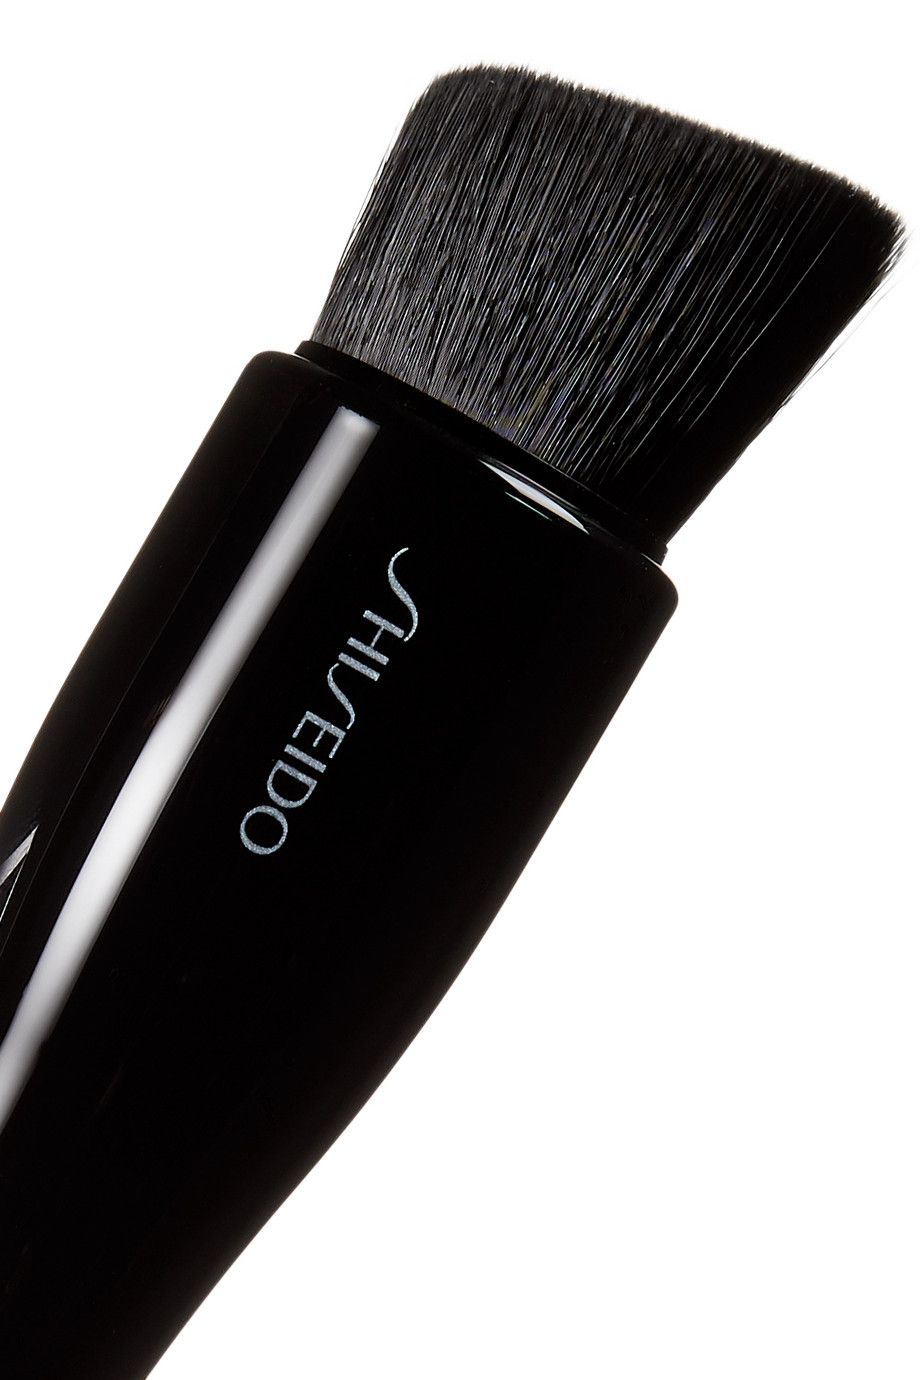 SHISEIDO Hasu Fude Foundation Brush